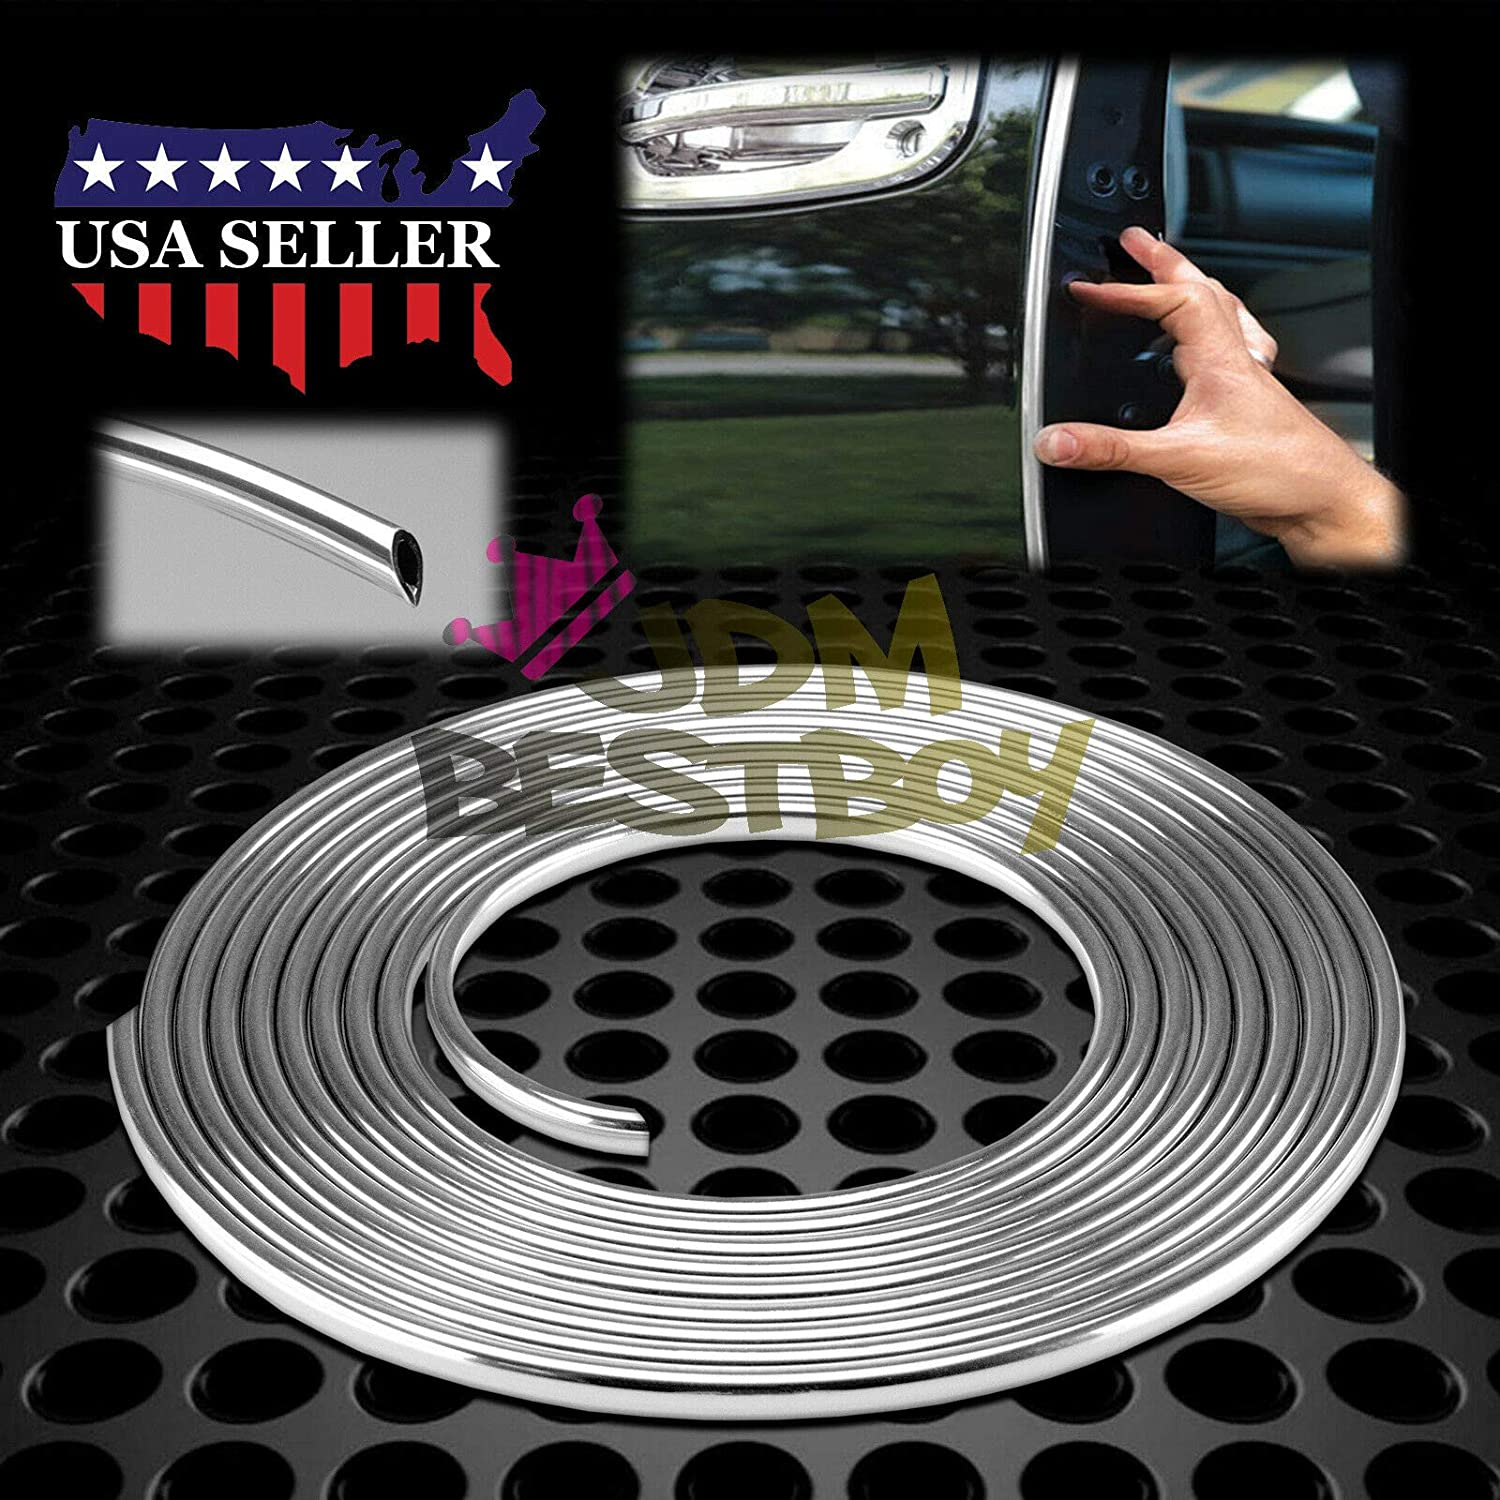 JDMBESTBOY Universal Chrome Door Edge Guard Protection Car Auto Molding Trim 15 Feet D.I.Y FIT Chevrolet Chevy Ford GMC Dodge Lincoln Jeep Chrysler Cadillac Buick Mercury Saturn #CHRDR1